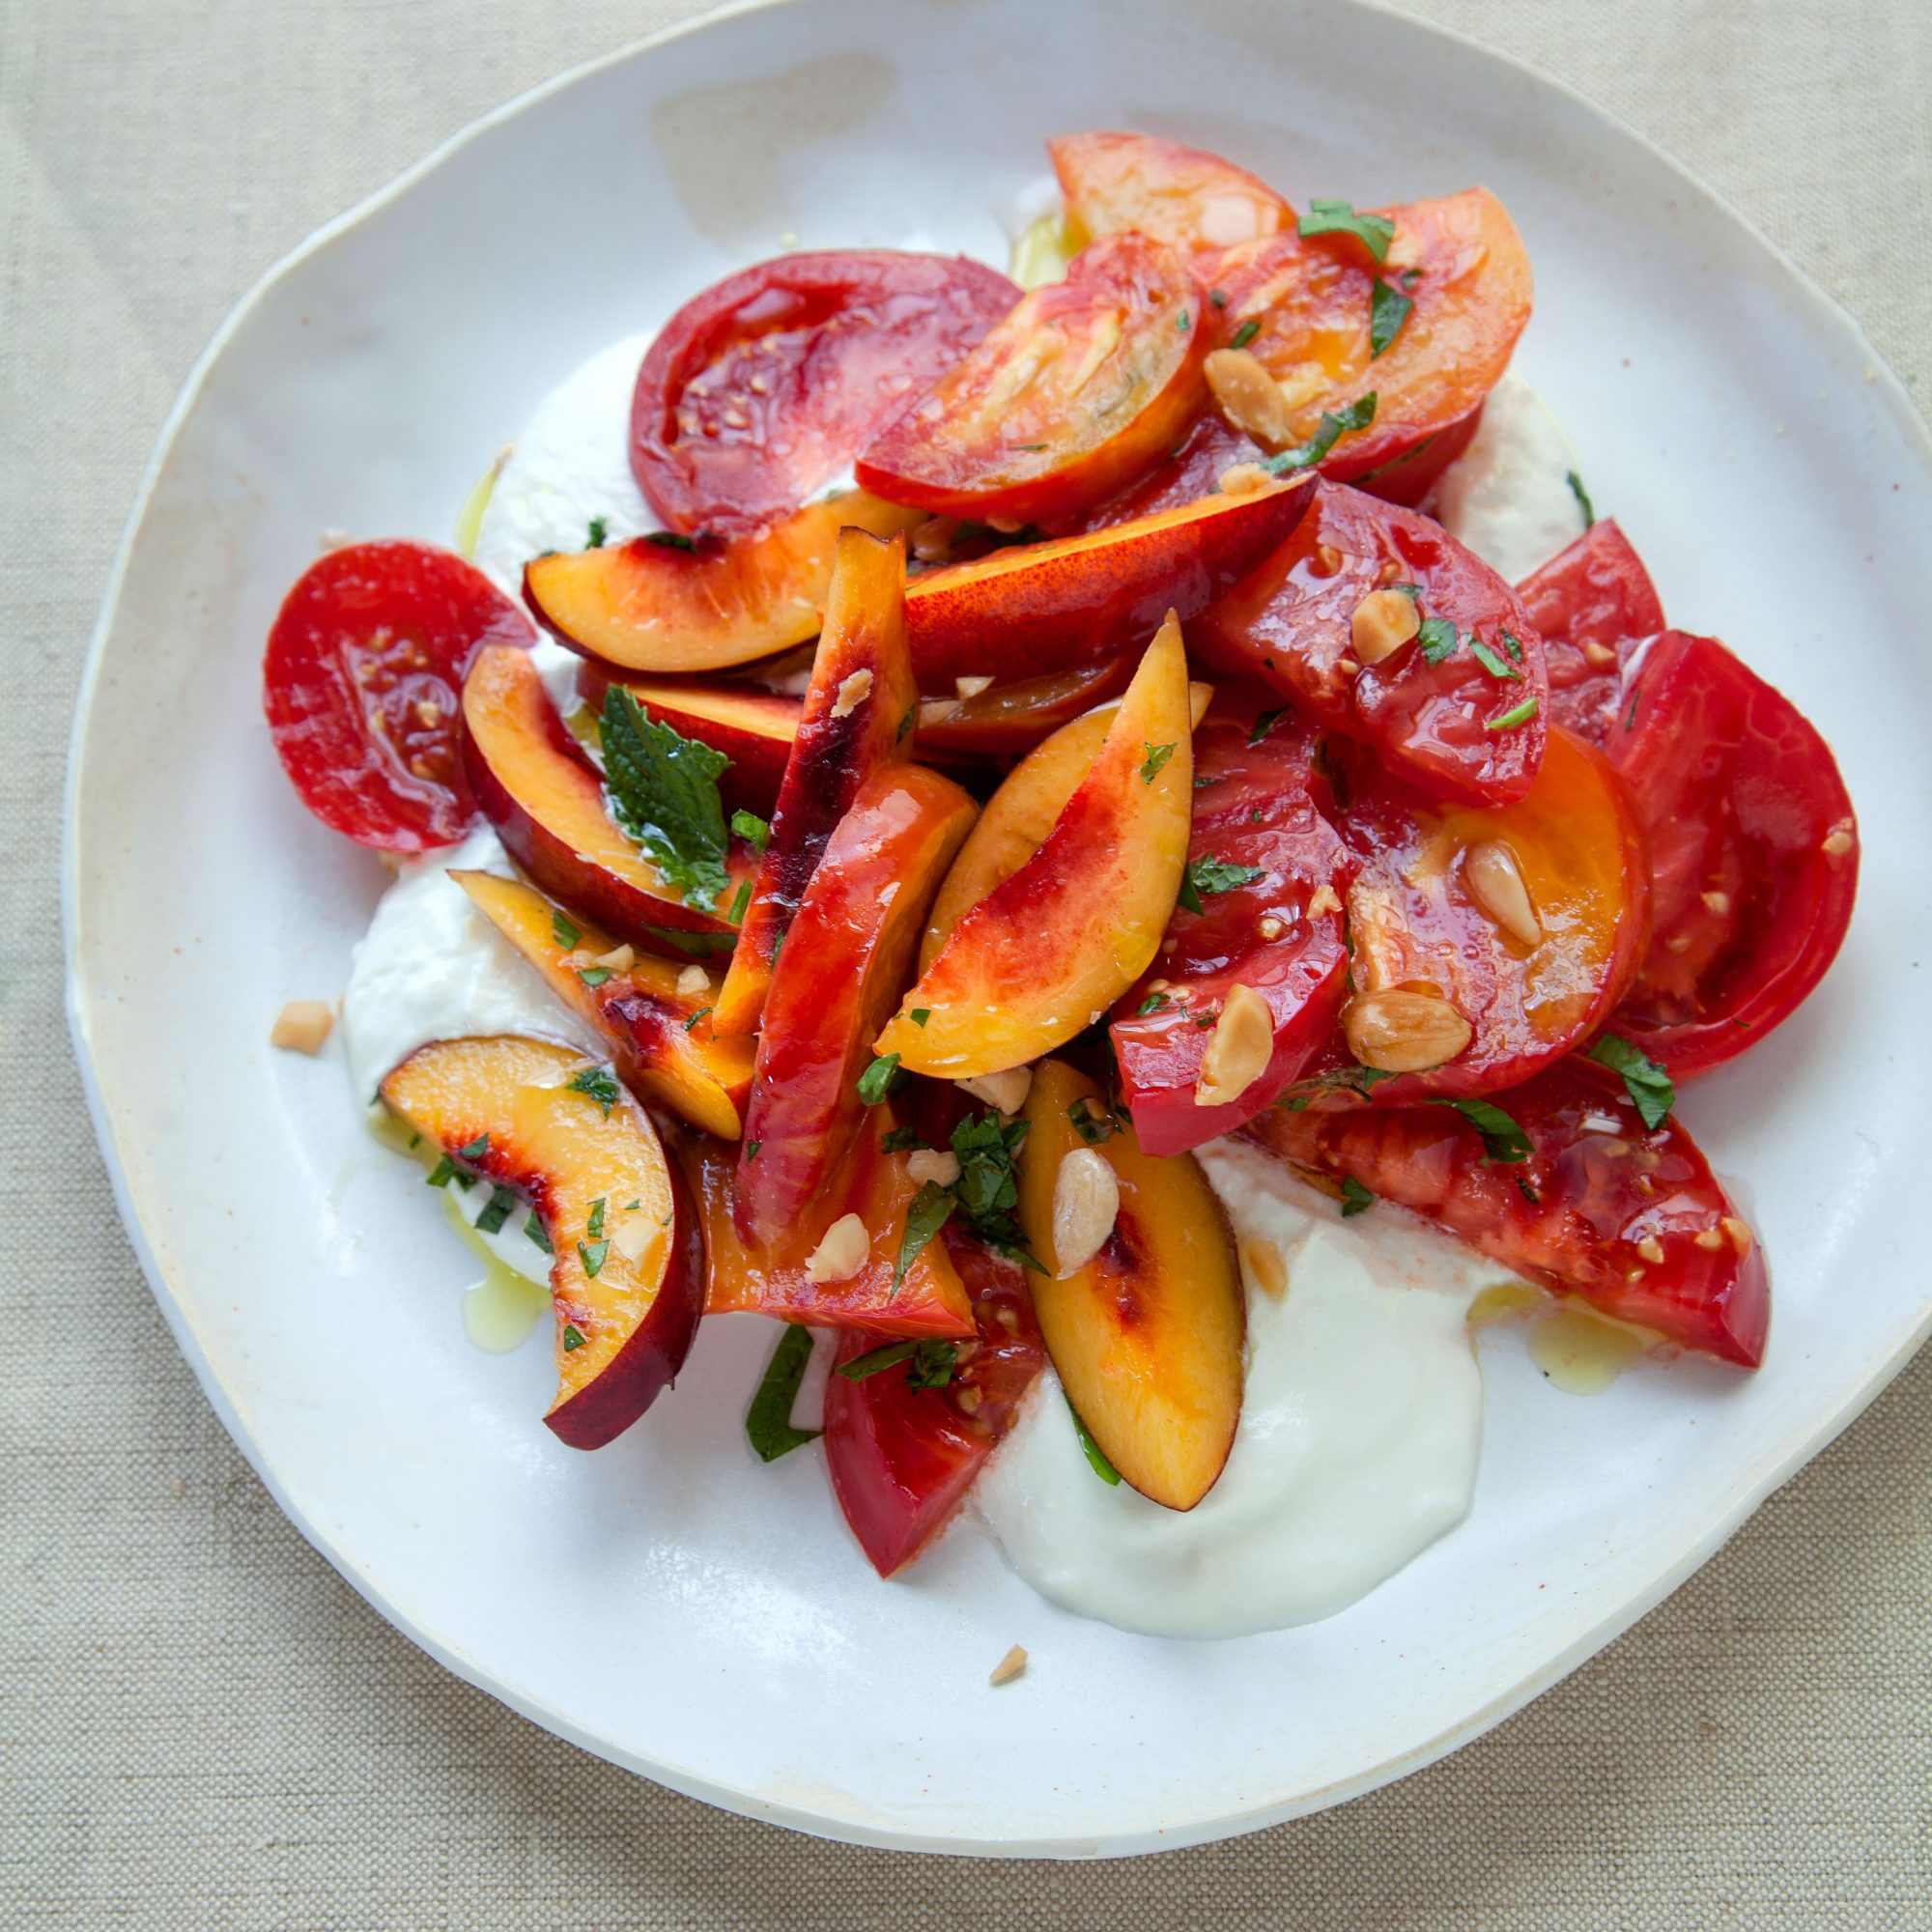 Heirloom Tomato and Nectarine Salad with Whipped Feta